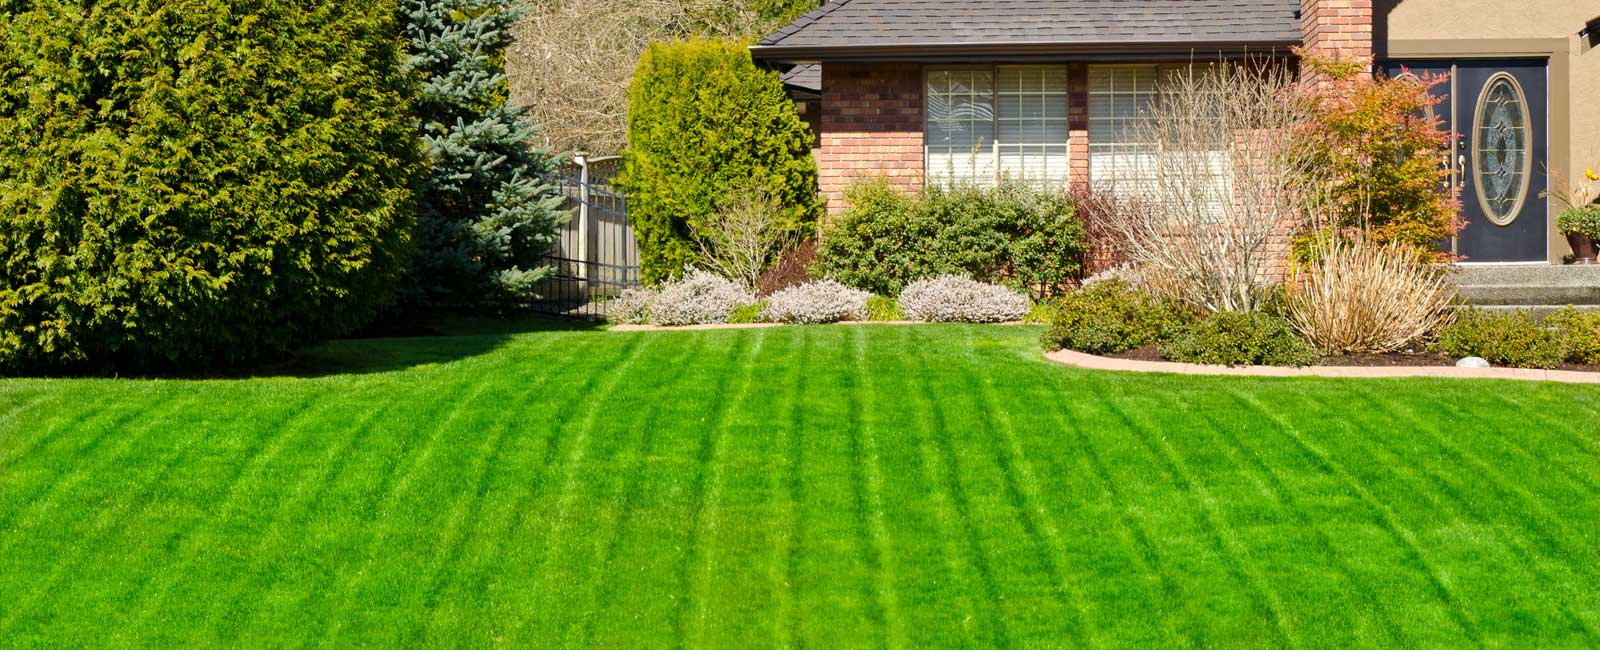 A well maintained yard that has been cared for by the experts at Delaware Valley Turf in Bryn Mawr PA